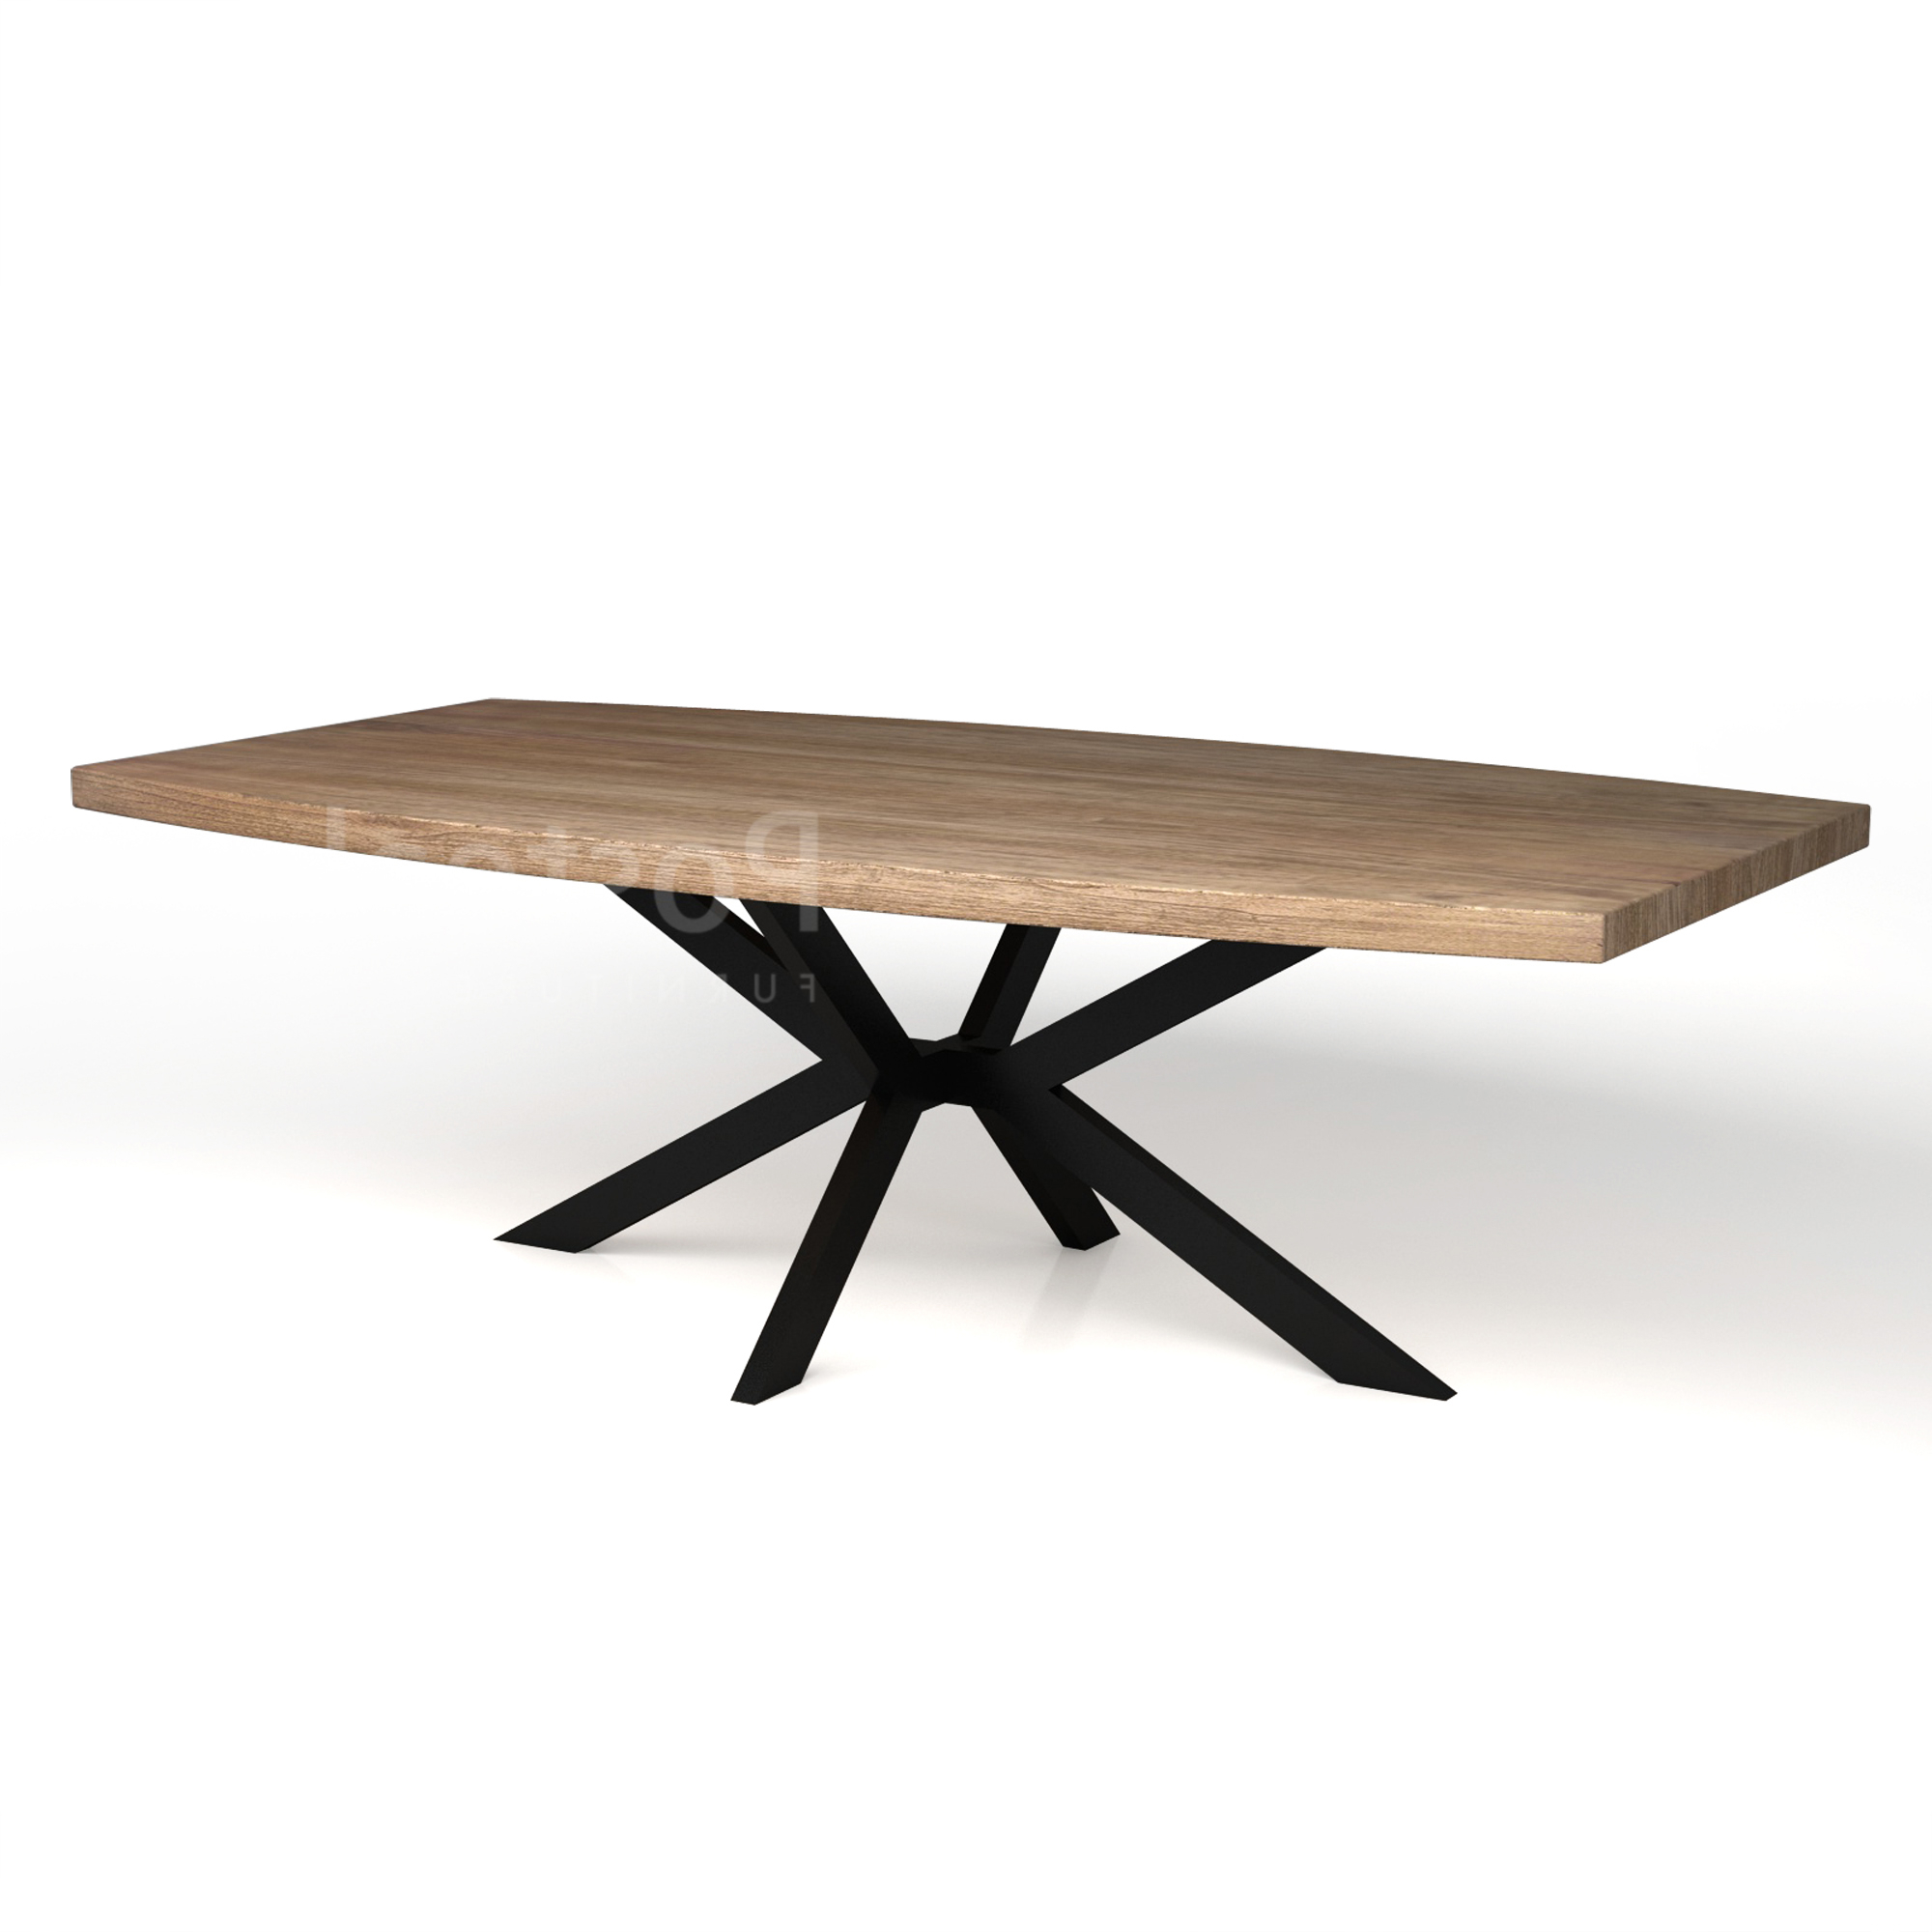 Iron Wood Dining Tables With Metal Legs Intended For Newest Modern Dining Table – Iron Cross Legs (View 23 of 25)